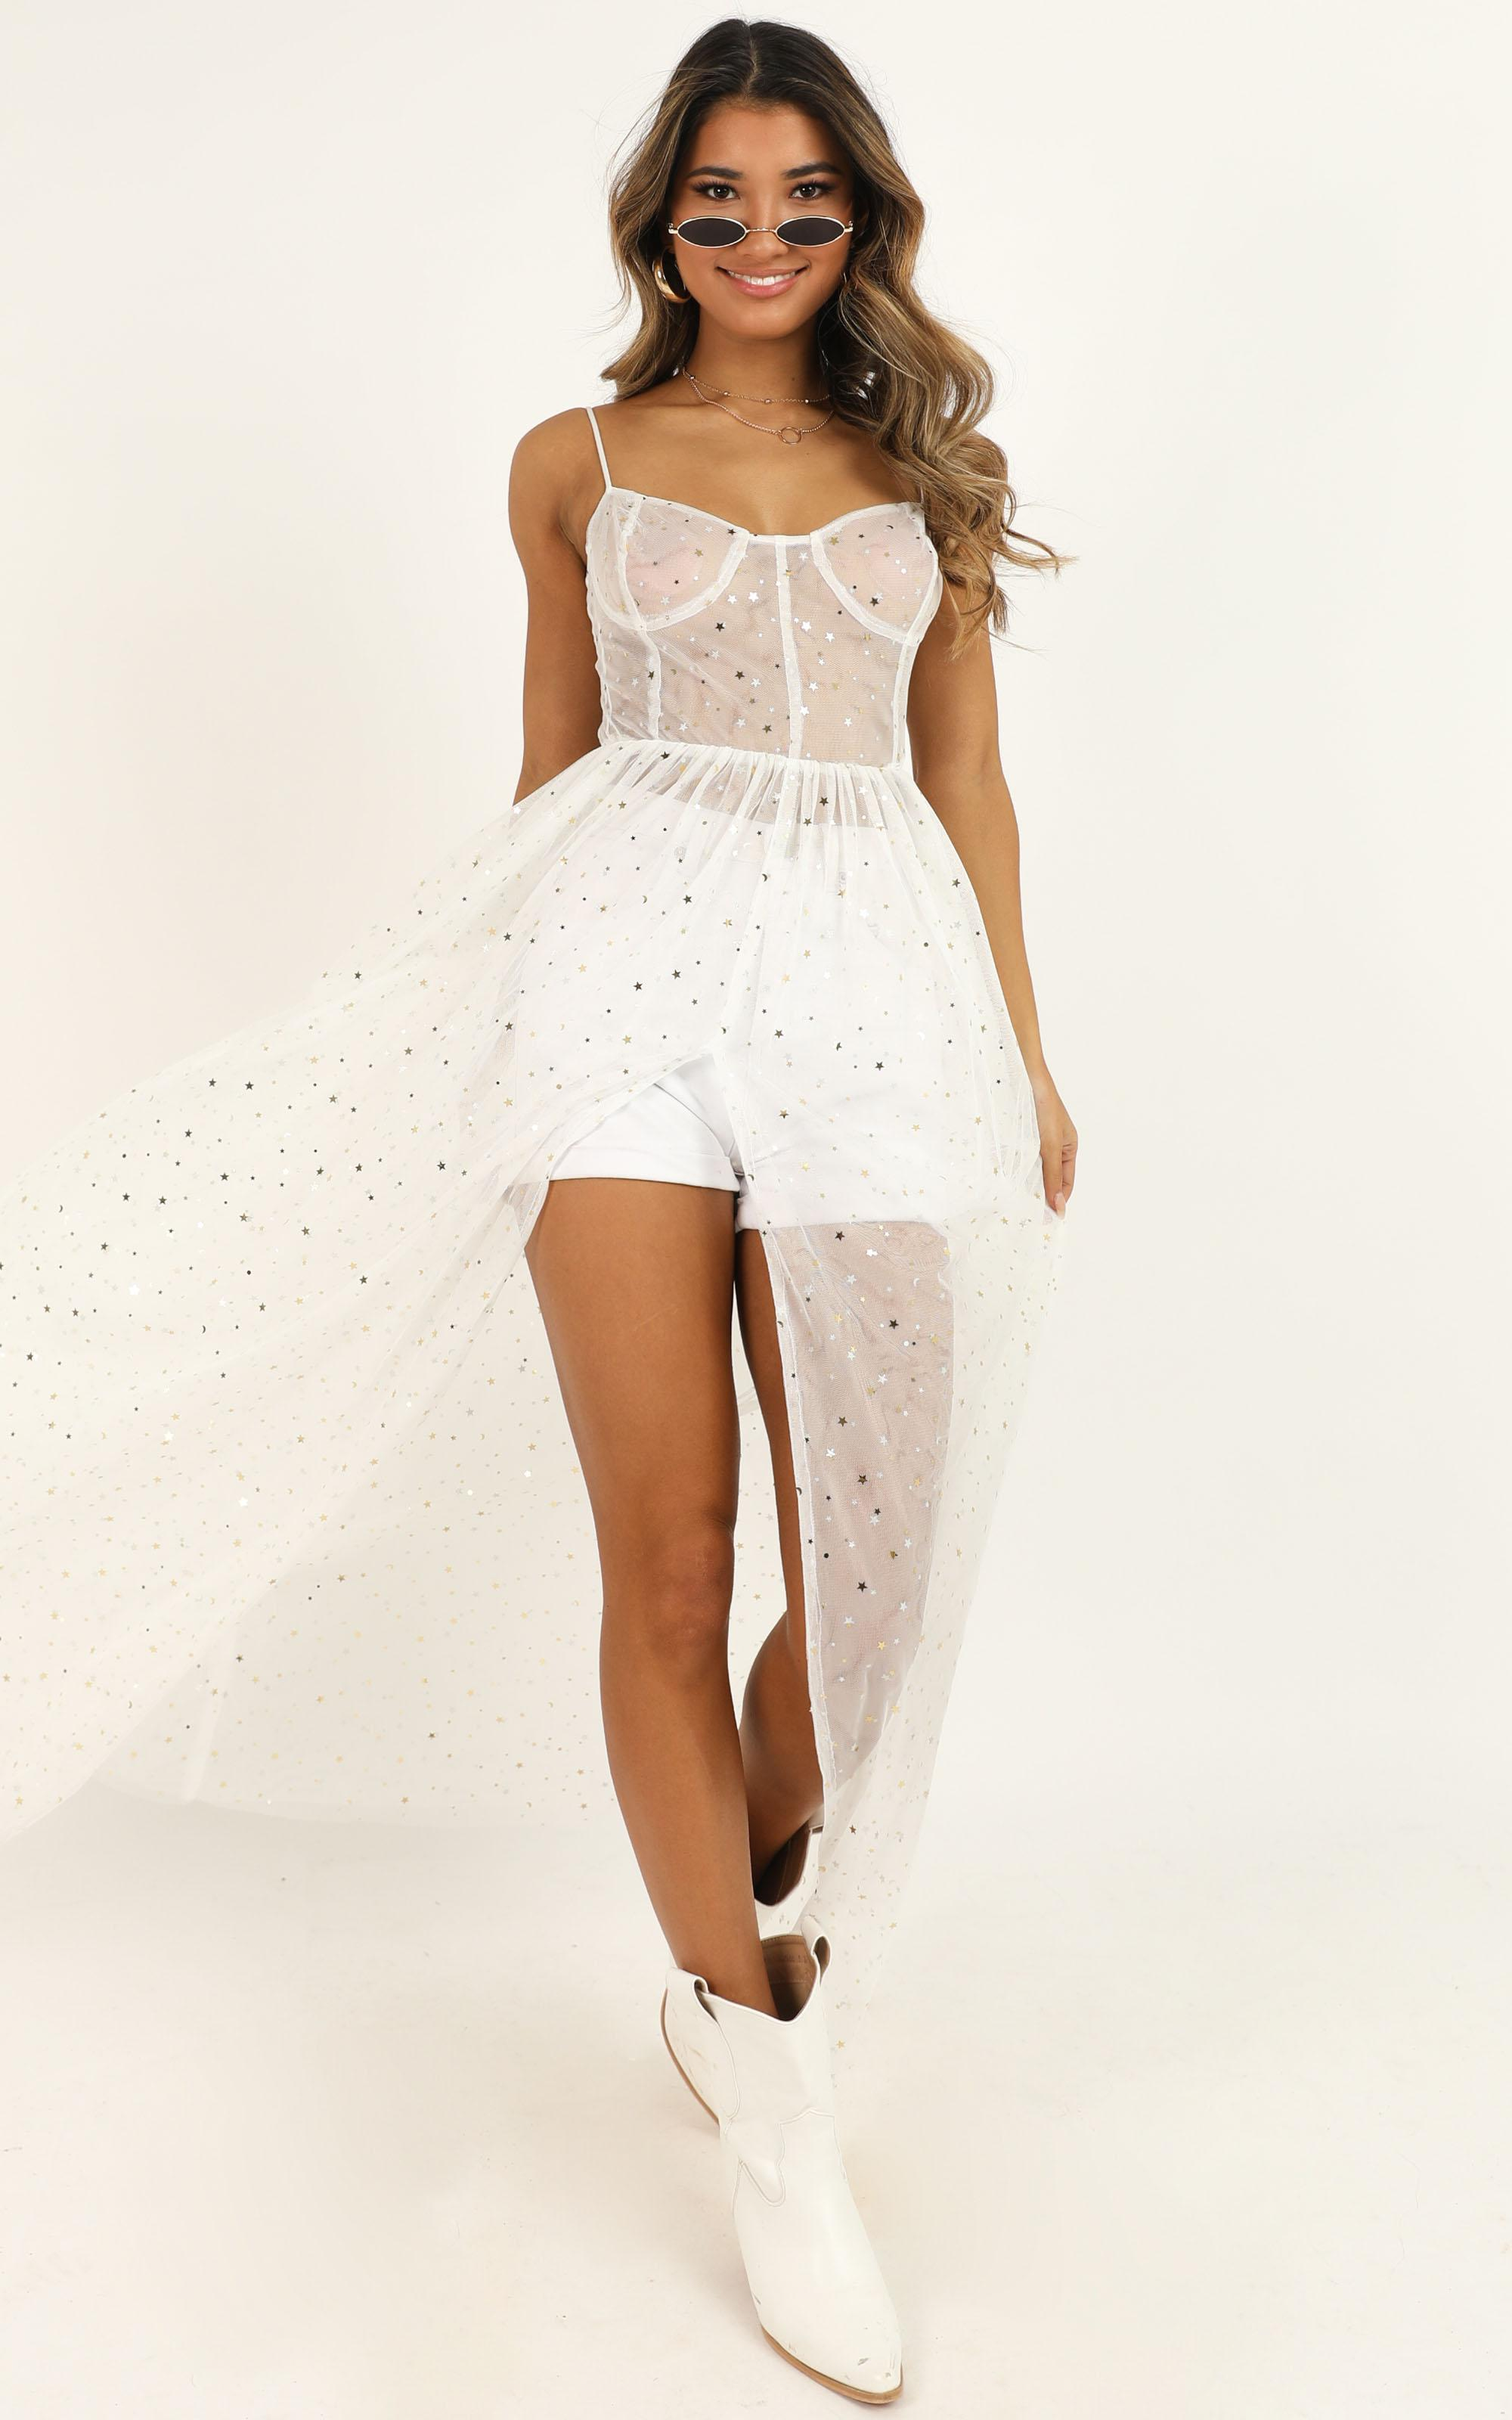 Stunning View Maxi Dress in white mesh - 20 (XXXXL), White, hi-res image number null